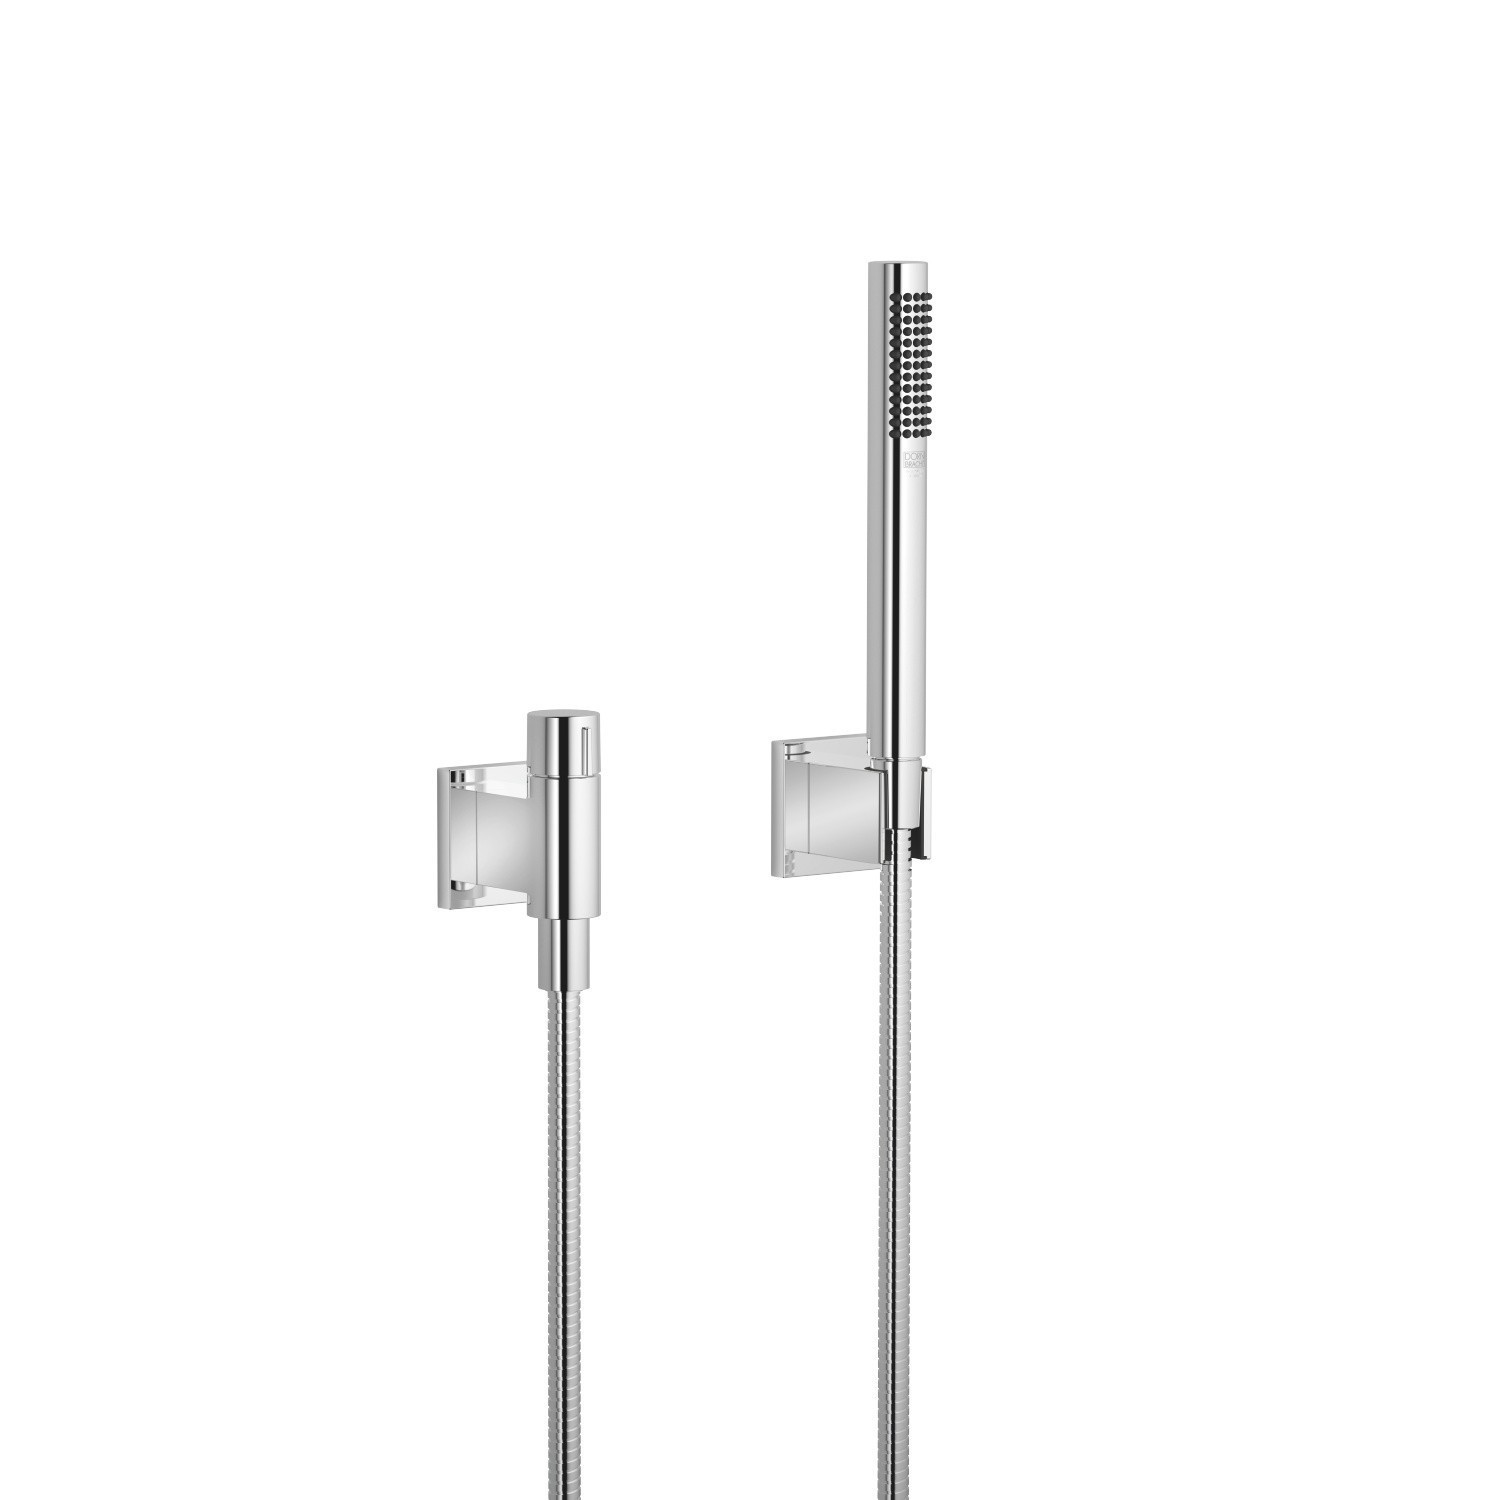 DORNBRACHT 27809980-0010 WALL MOUNT SINGLE-FUNCTION ROUND HAND SHOWER SET WITH INDIVIDUAL FLANGES AND VOLUME CONTROL